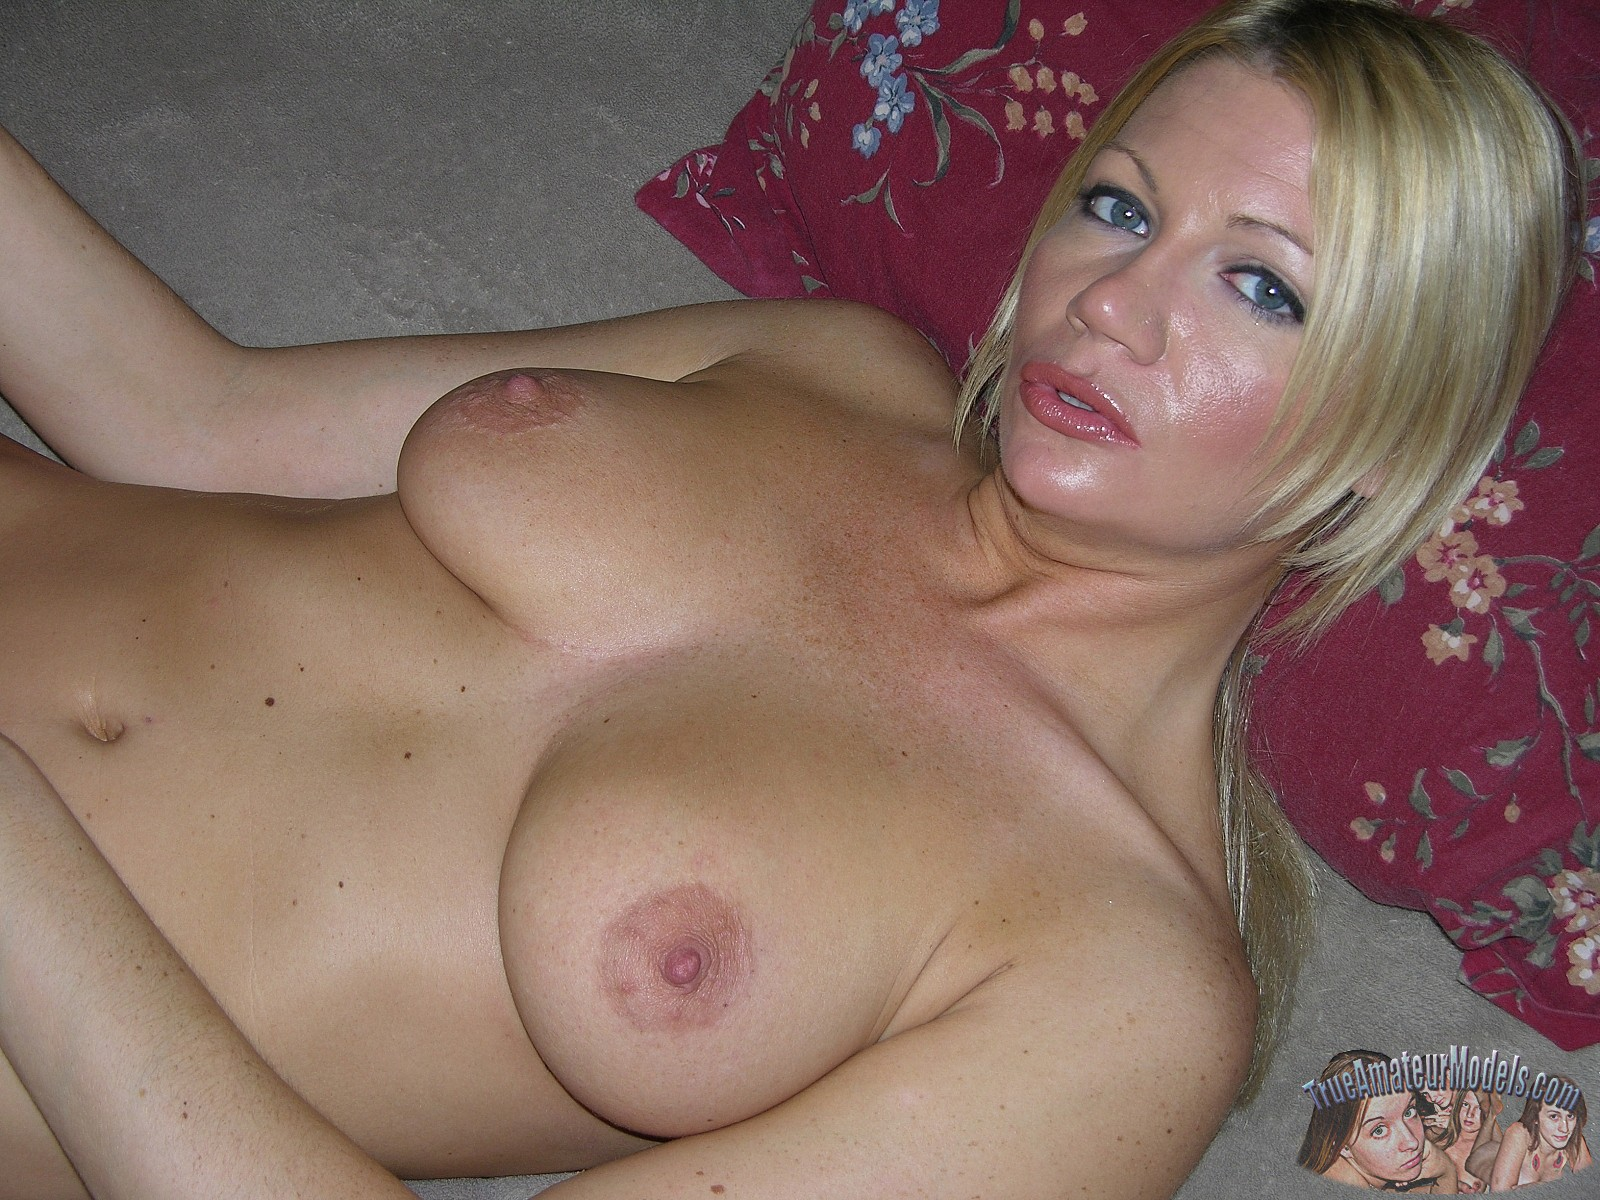 High def 1080i mature adult videos